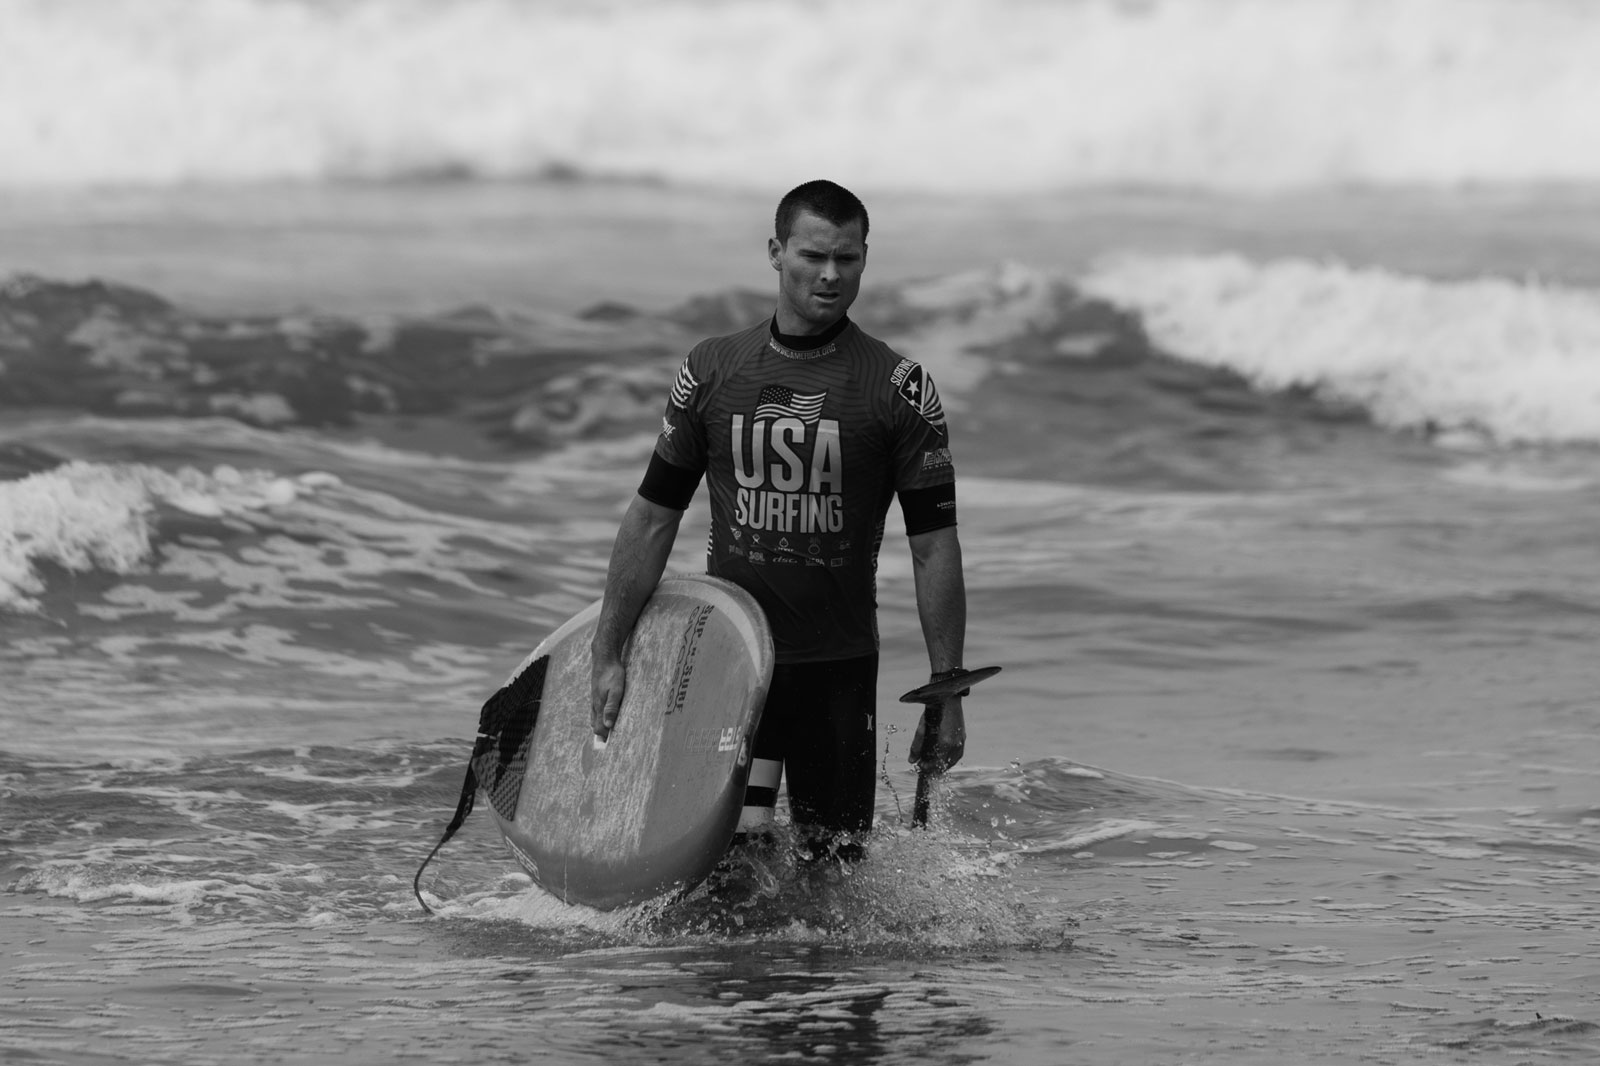 starboard-sup-sean-poynter-2018-USA-SUP-Surfing-Championships-Oceanside-Harbor-hero